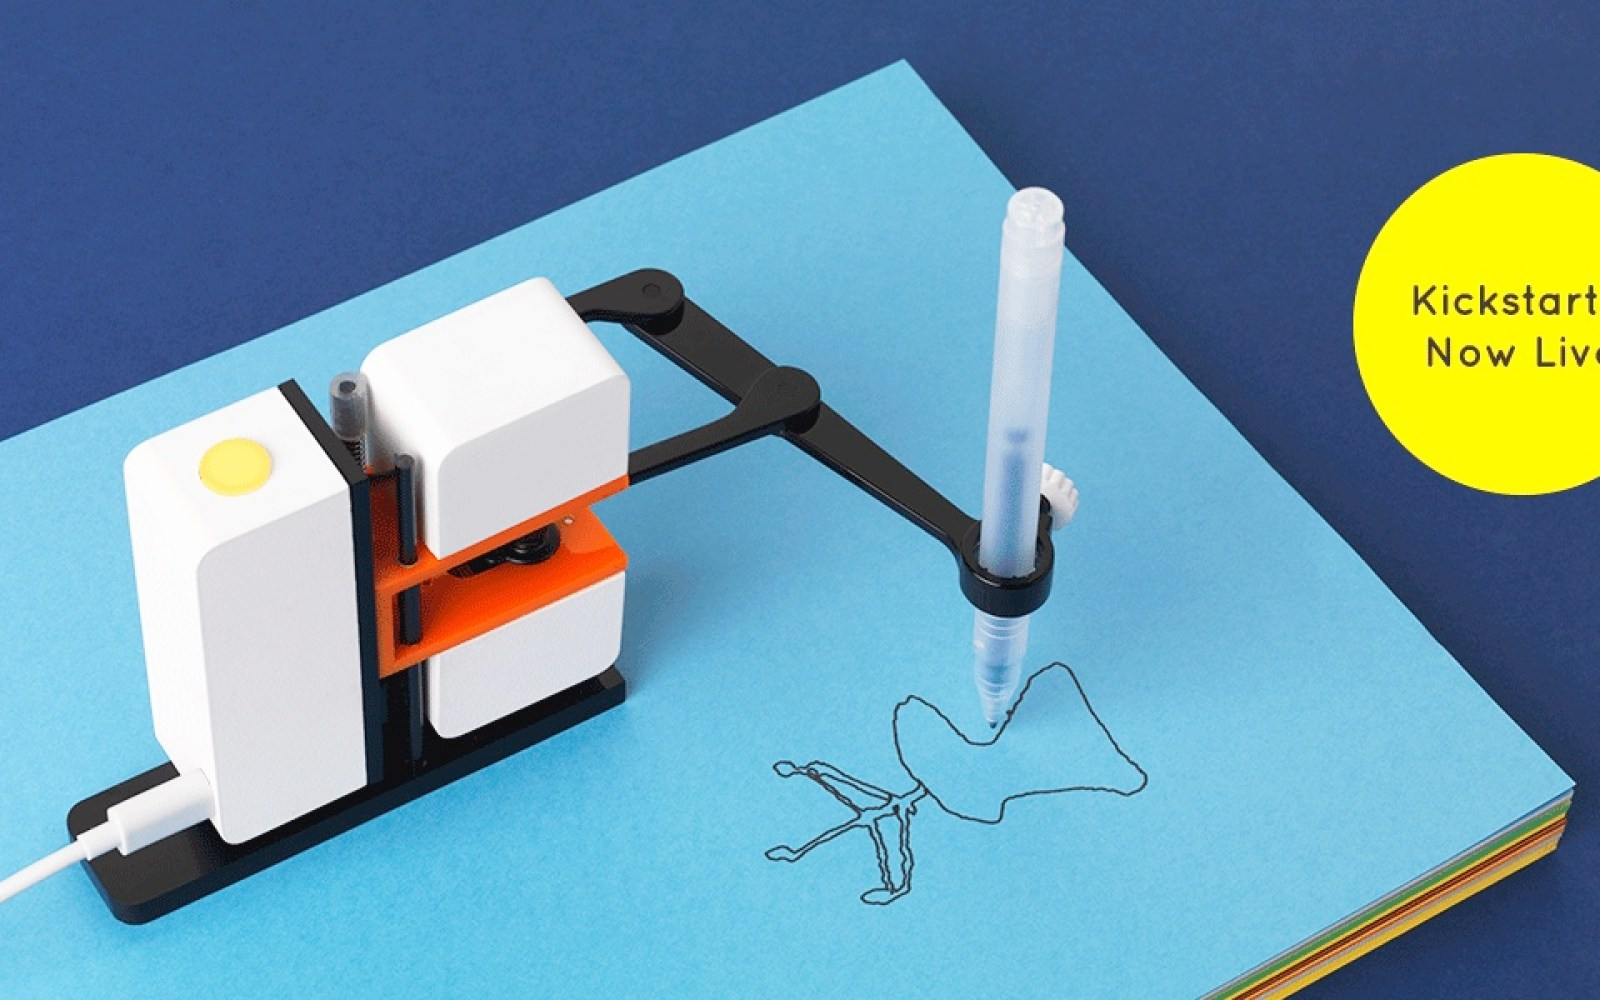 Line-us lets you sketch on real paper with its robotic arm all from your iPhone, iPad and Mac